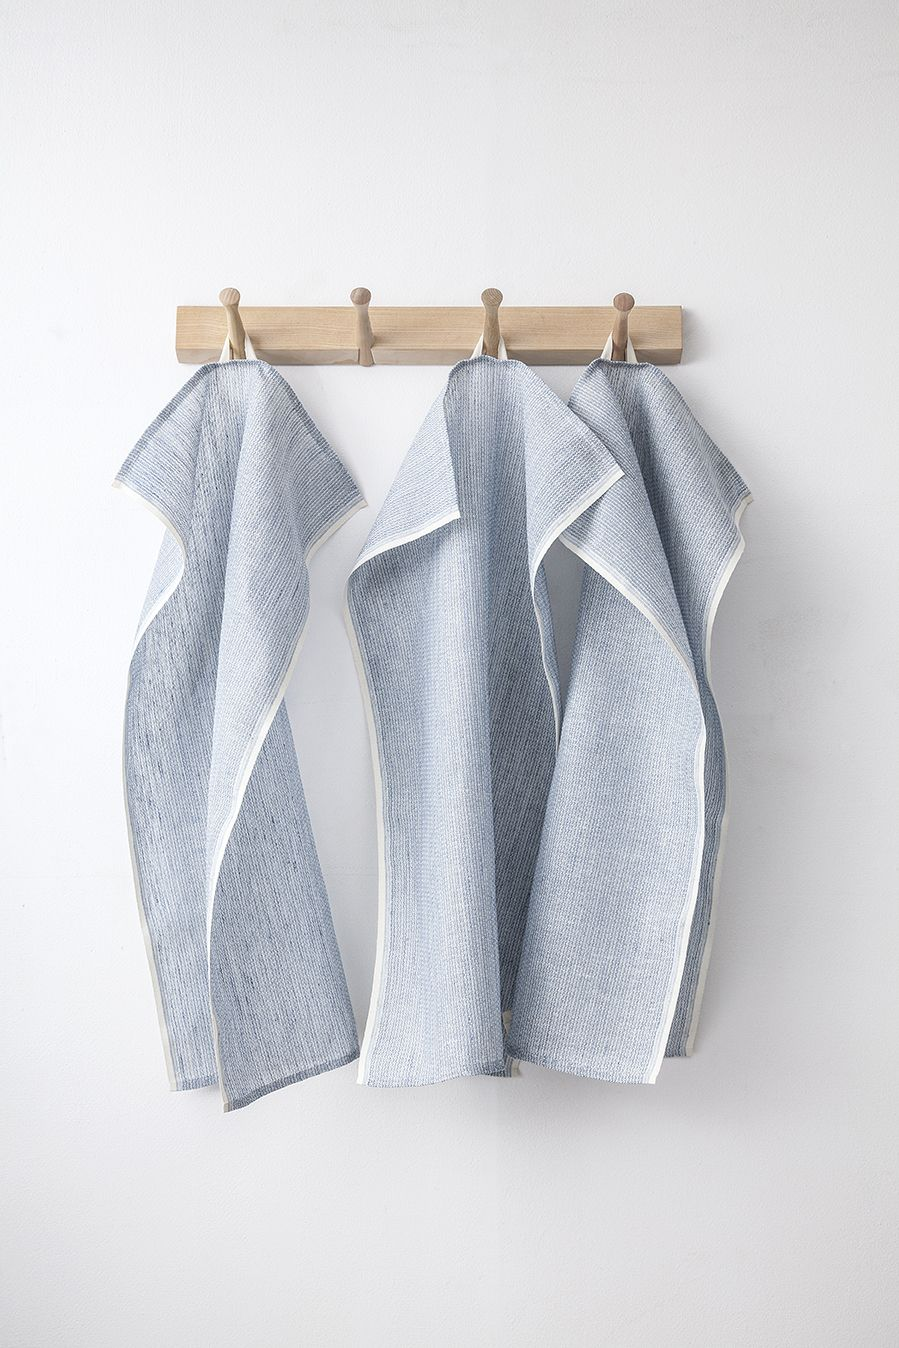 Karin Carlander // 100% organic linen // tea towels | things for a ...